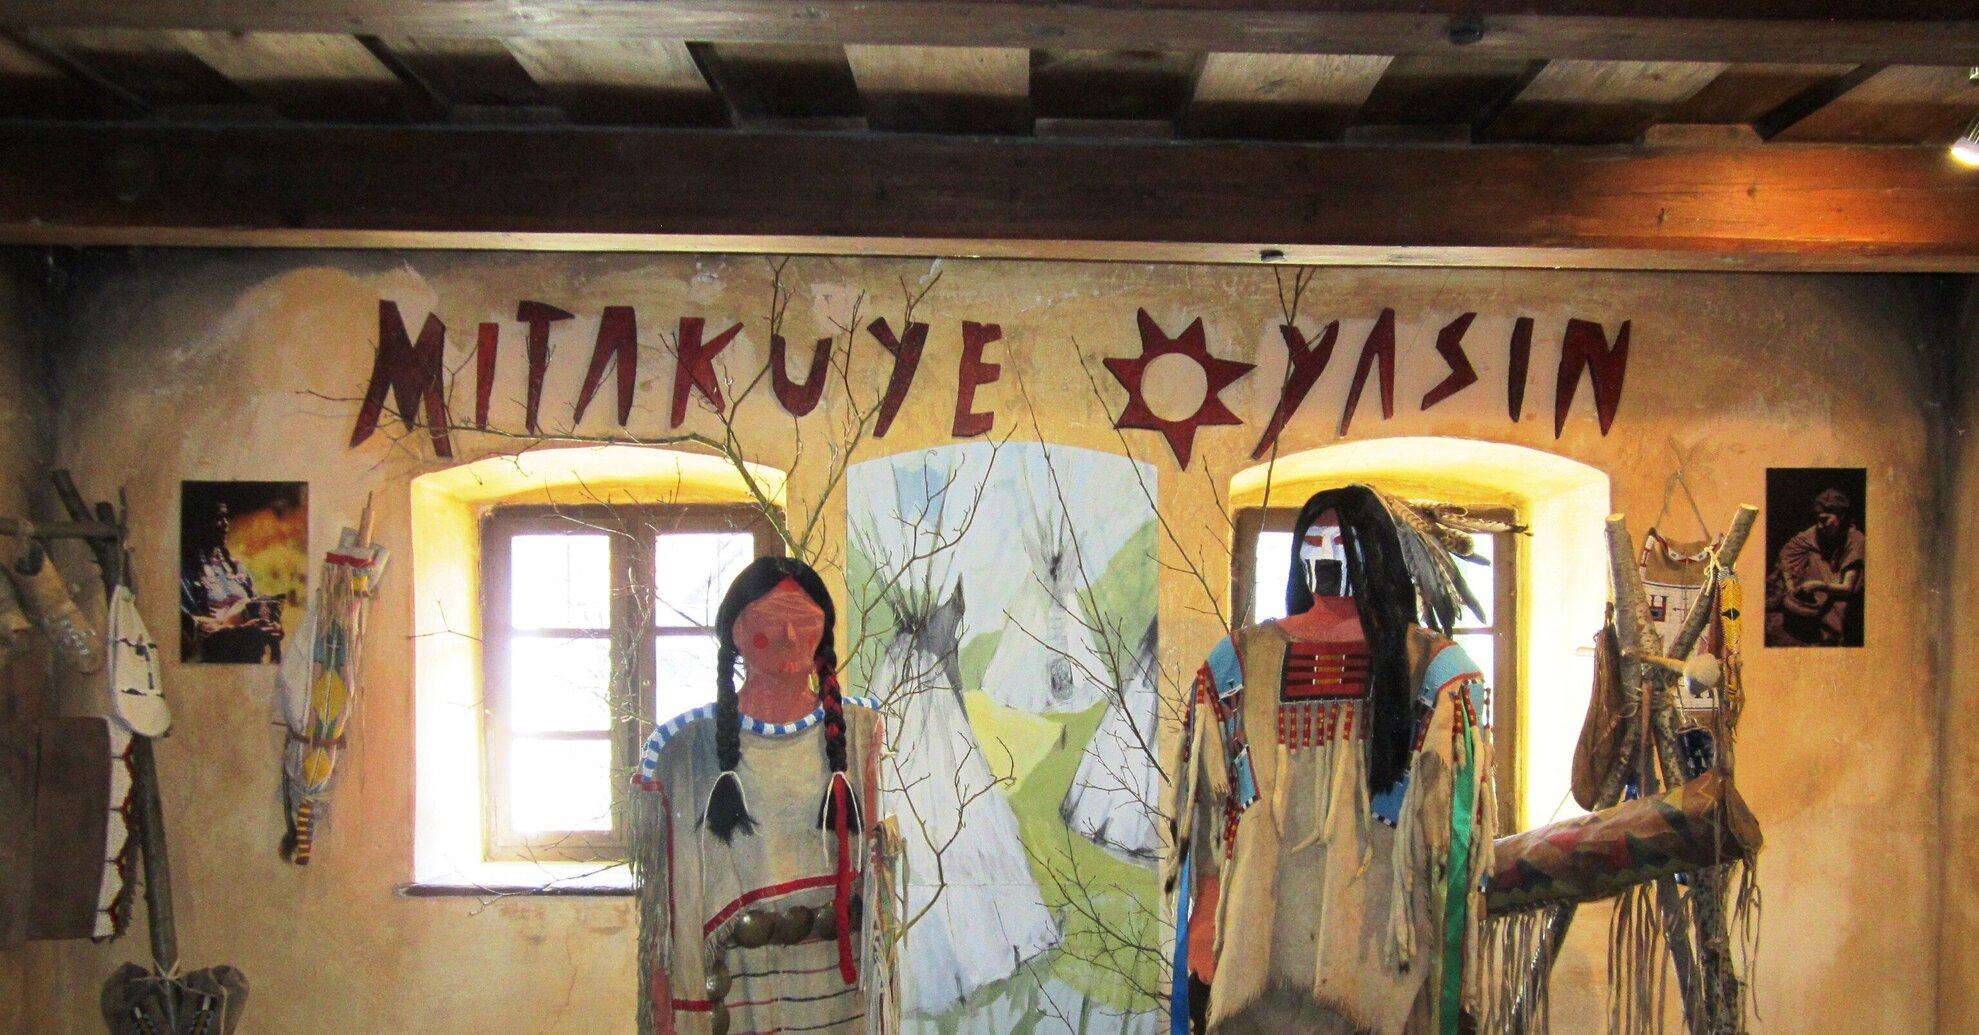 Mitakuye oyasin – All Are Related